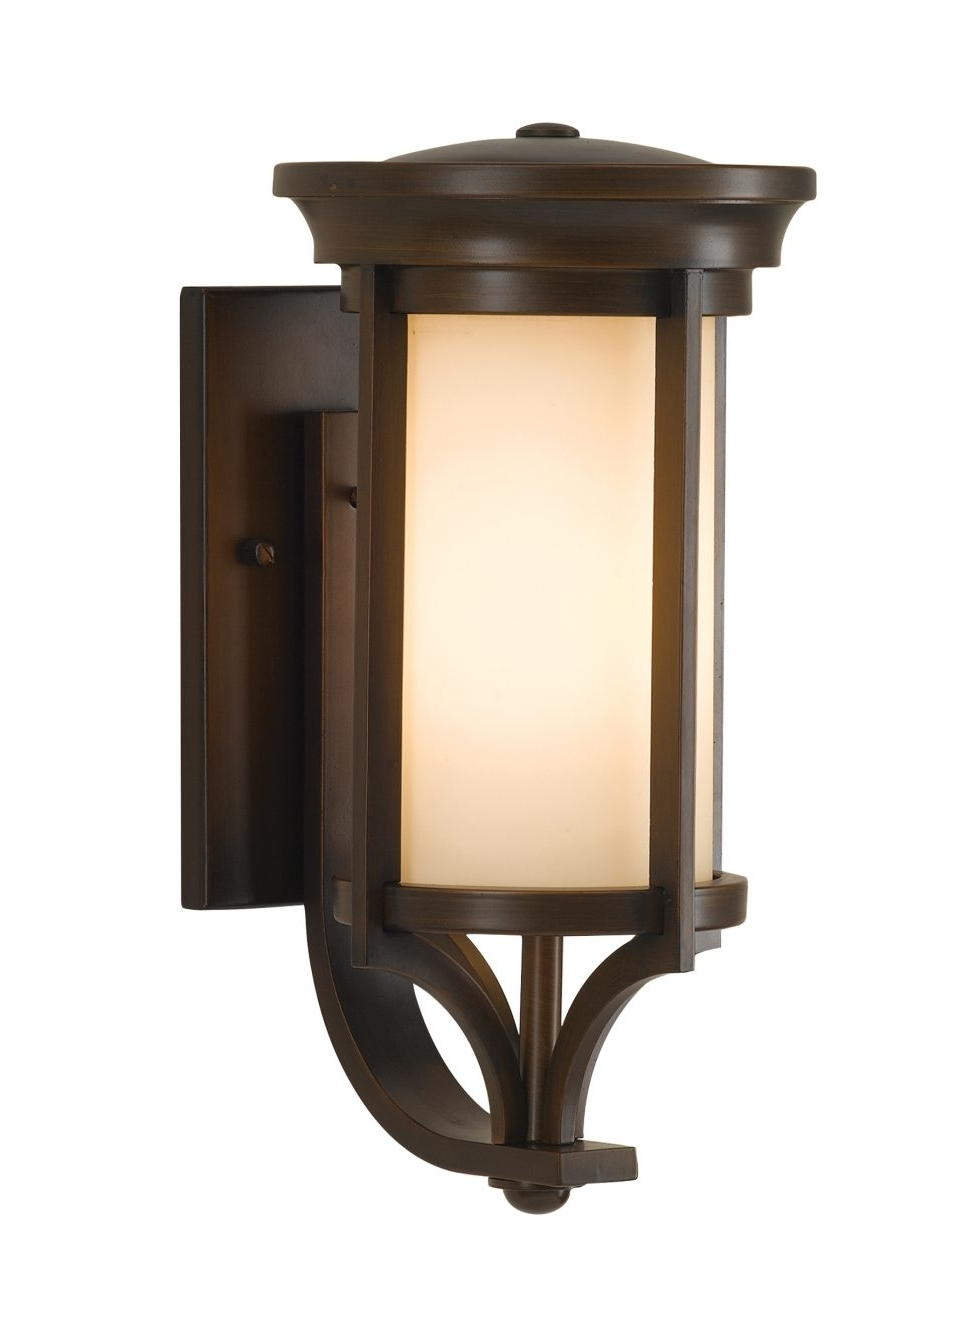 Favorite Outdoor Ceiling Light With Electrical Outlet With Electrical Wiring : Guiding Outdoor Ceiling Light Fixture With (Gallery 12 of 20)